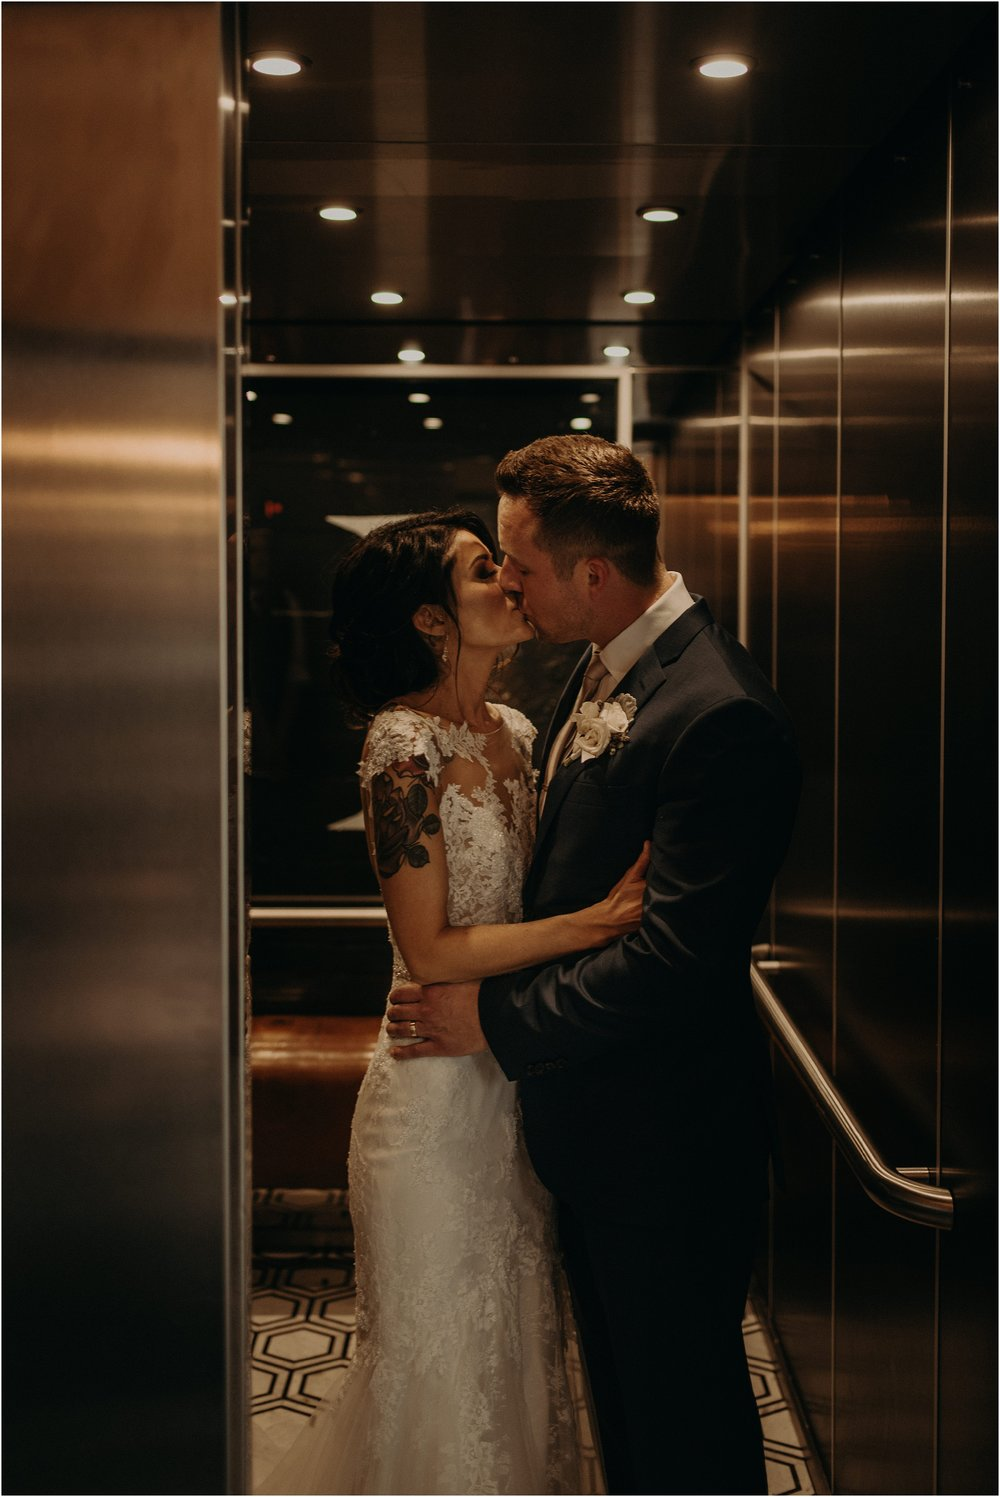 The couple steals a kiss in the uniquely designed Co. 251 elevator